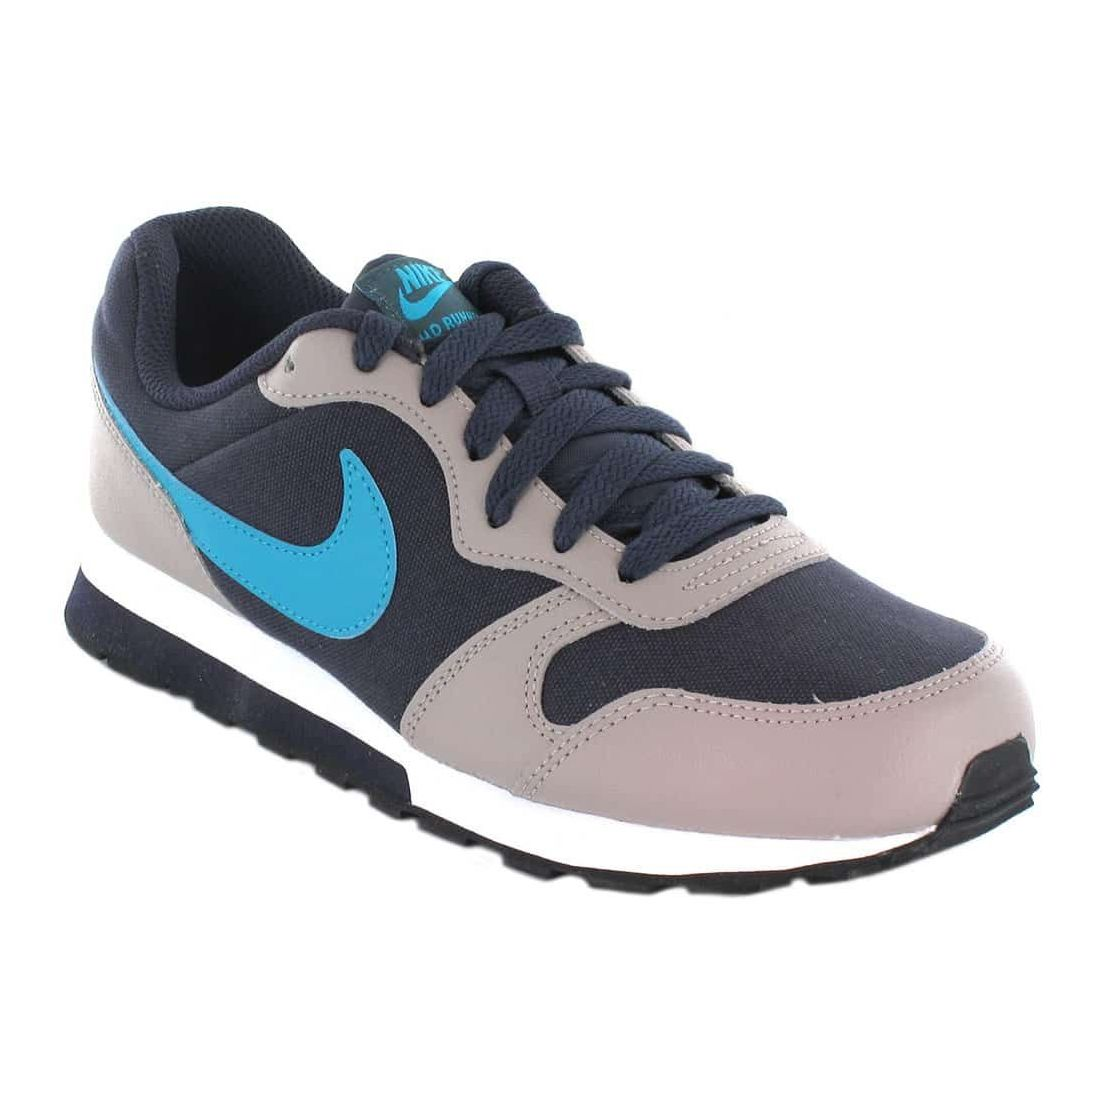 Nike MD Runner 2 GS 017 Nike Casual Footwear Lifestyle Junior Sizes: 36, 37,5, 38, 39, 40; Color: navy blue